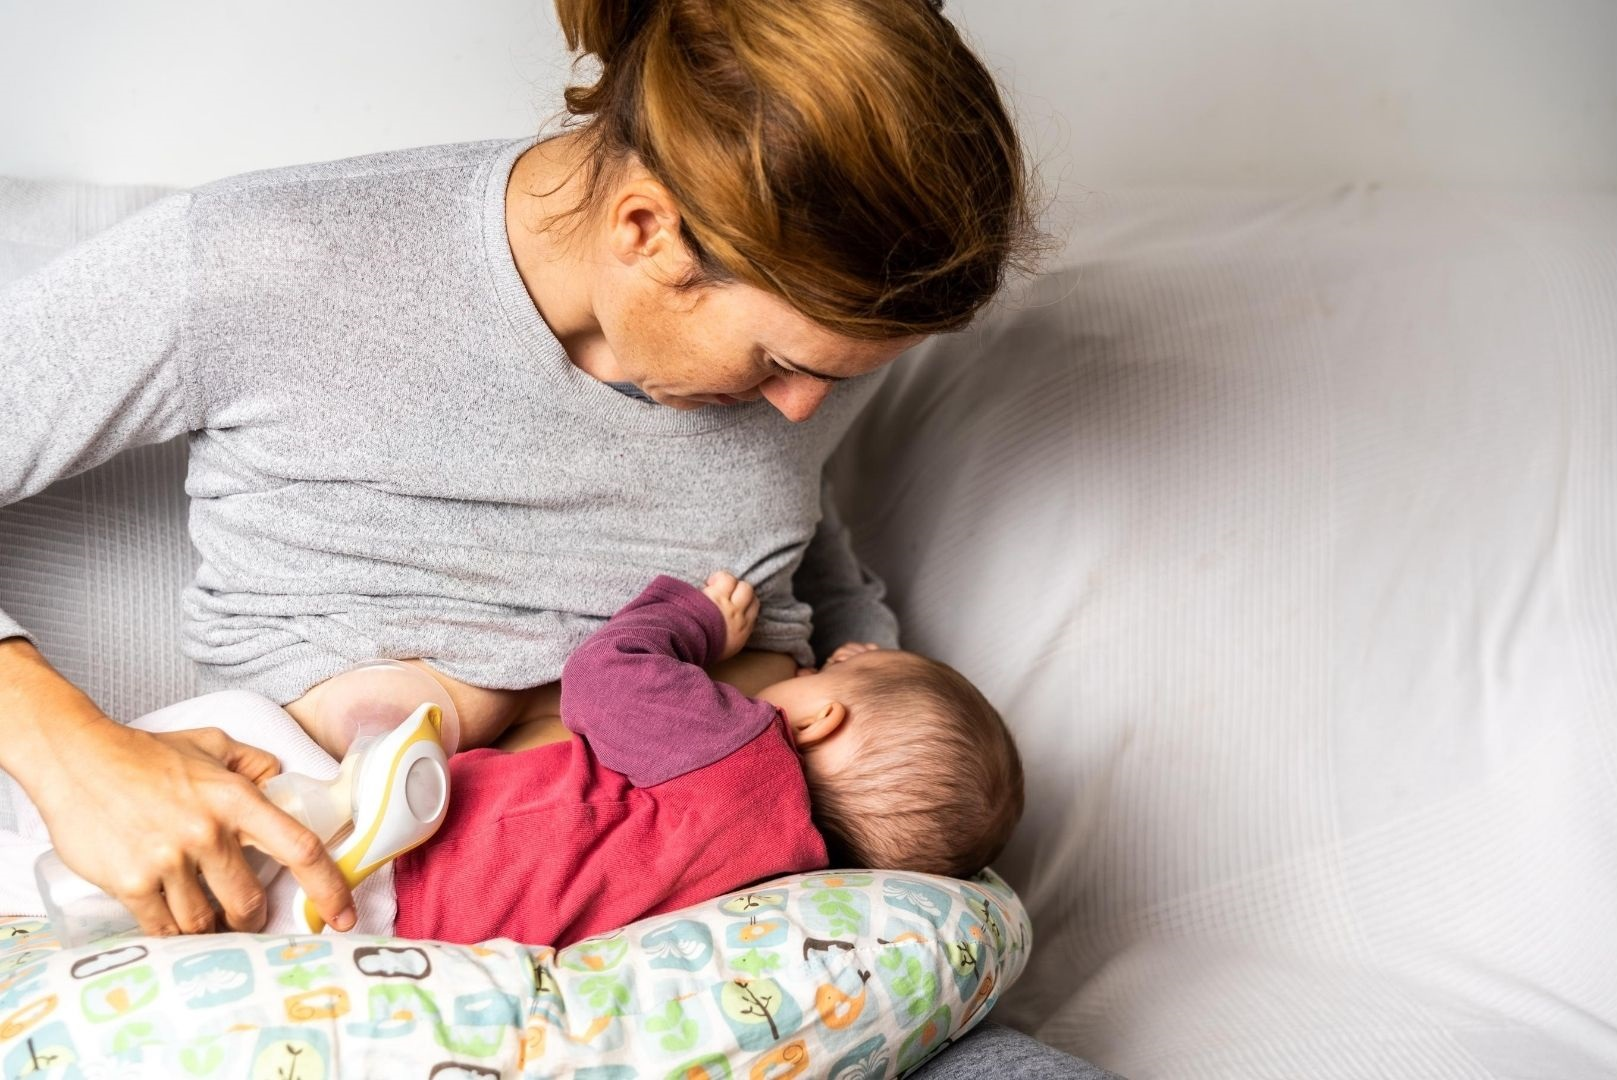 Woman breastfeeding and pumping